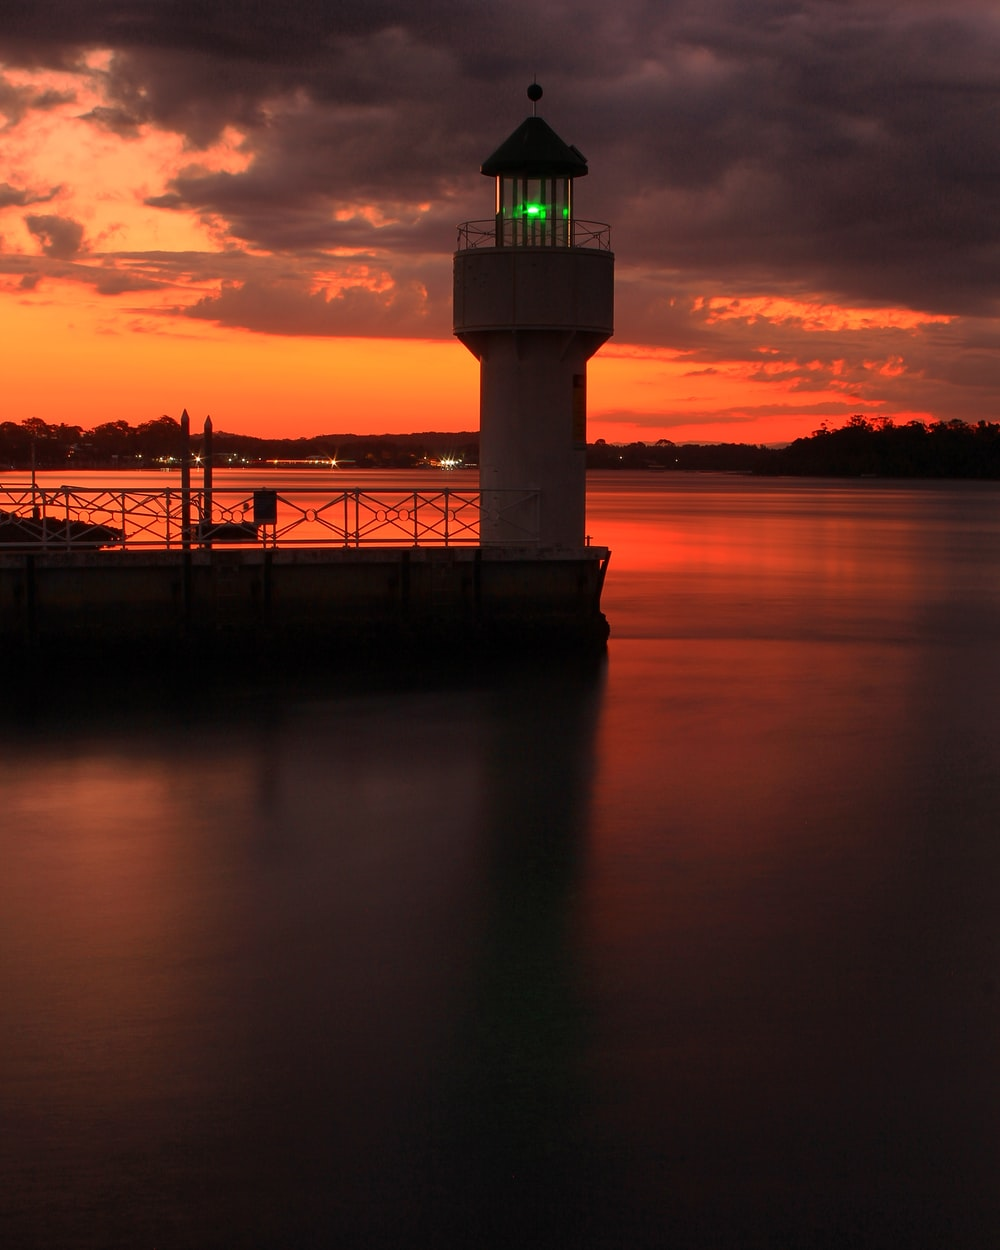 red and black sky and a lighthouse